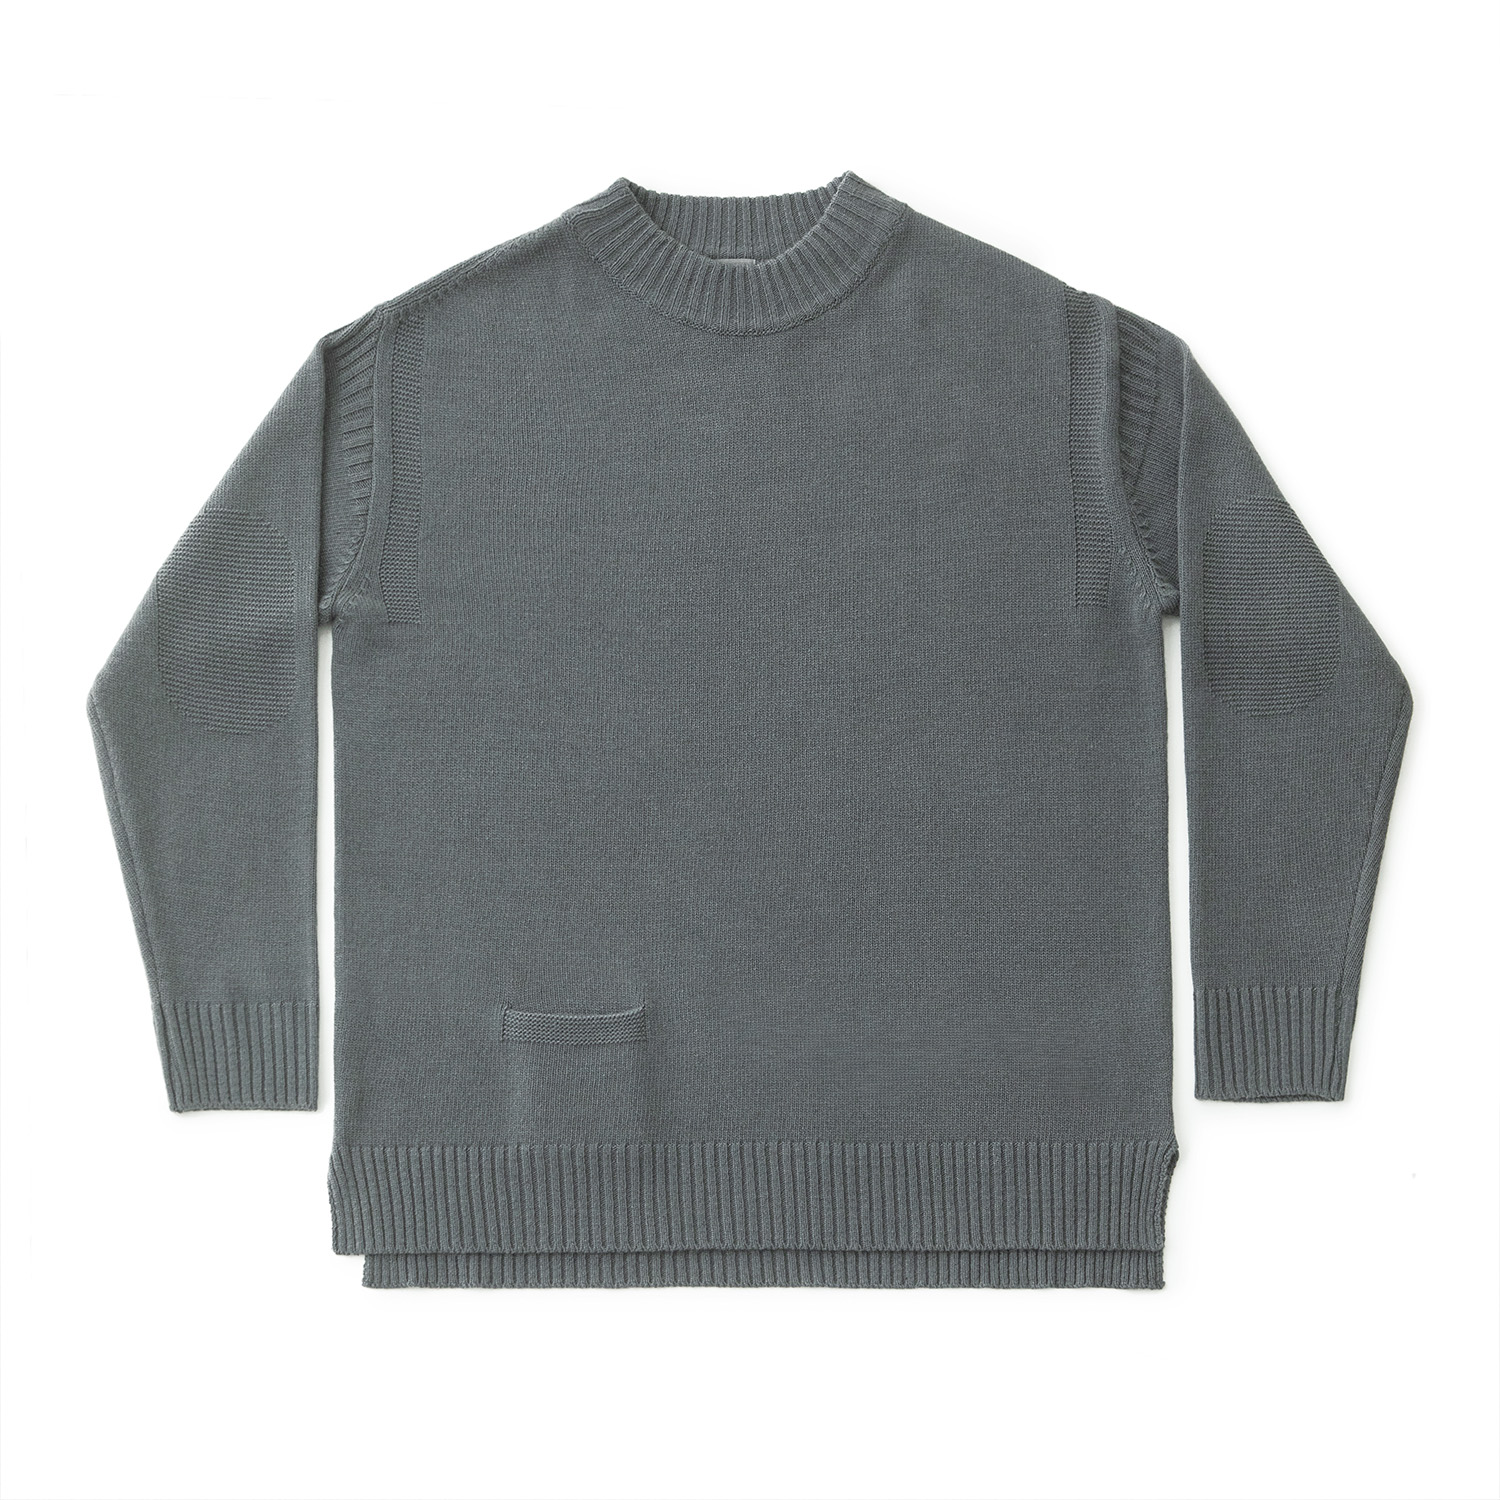 Sailor Guernsey Sweater (Steel Grey)